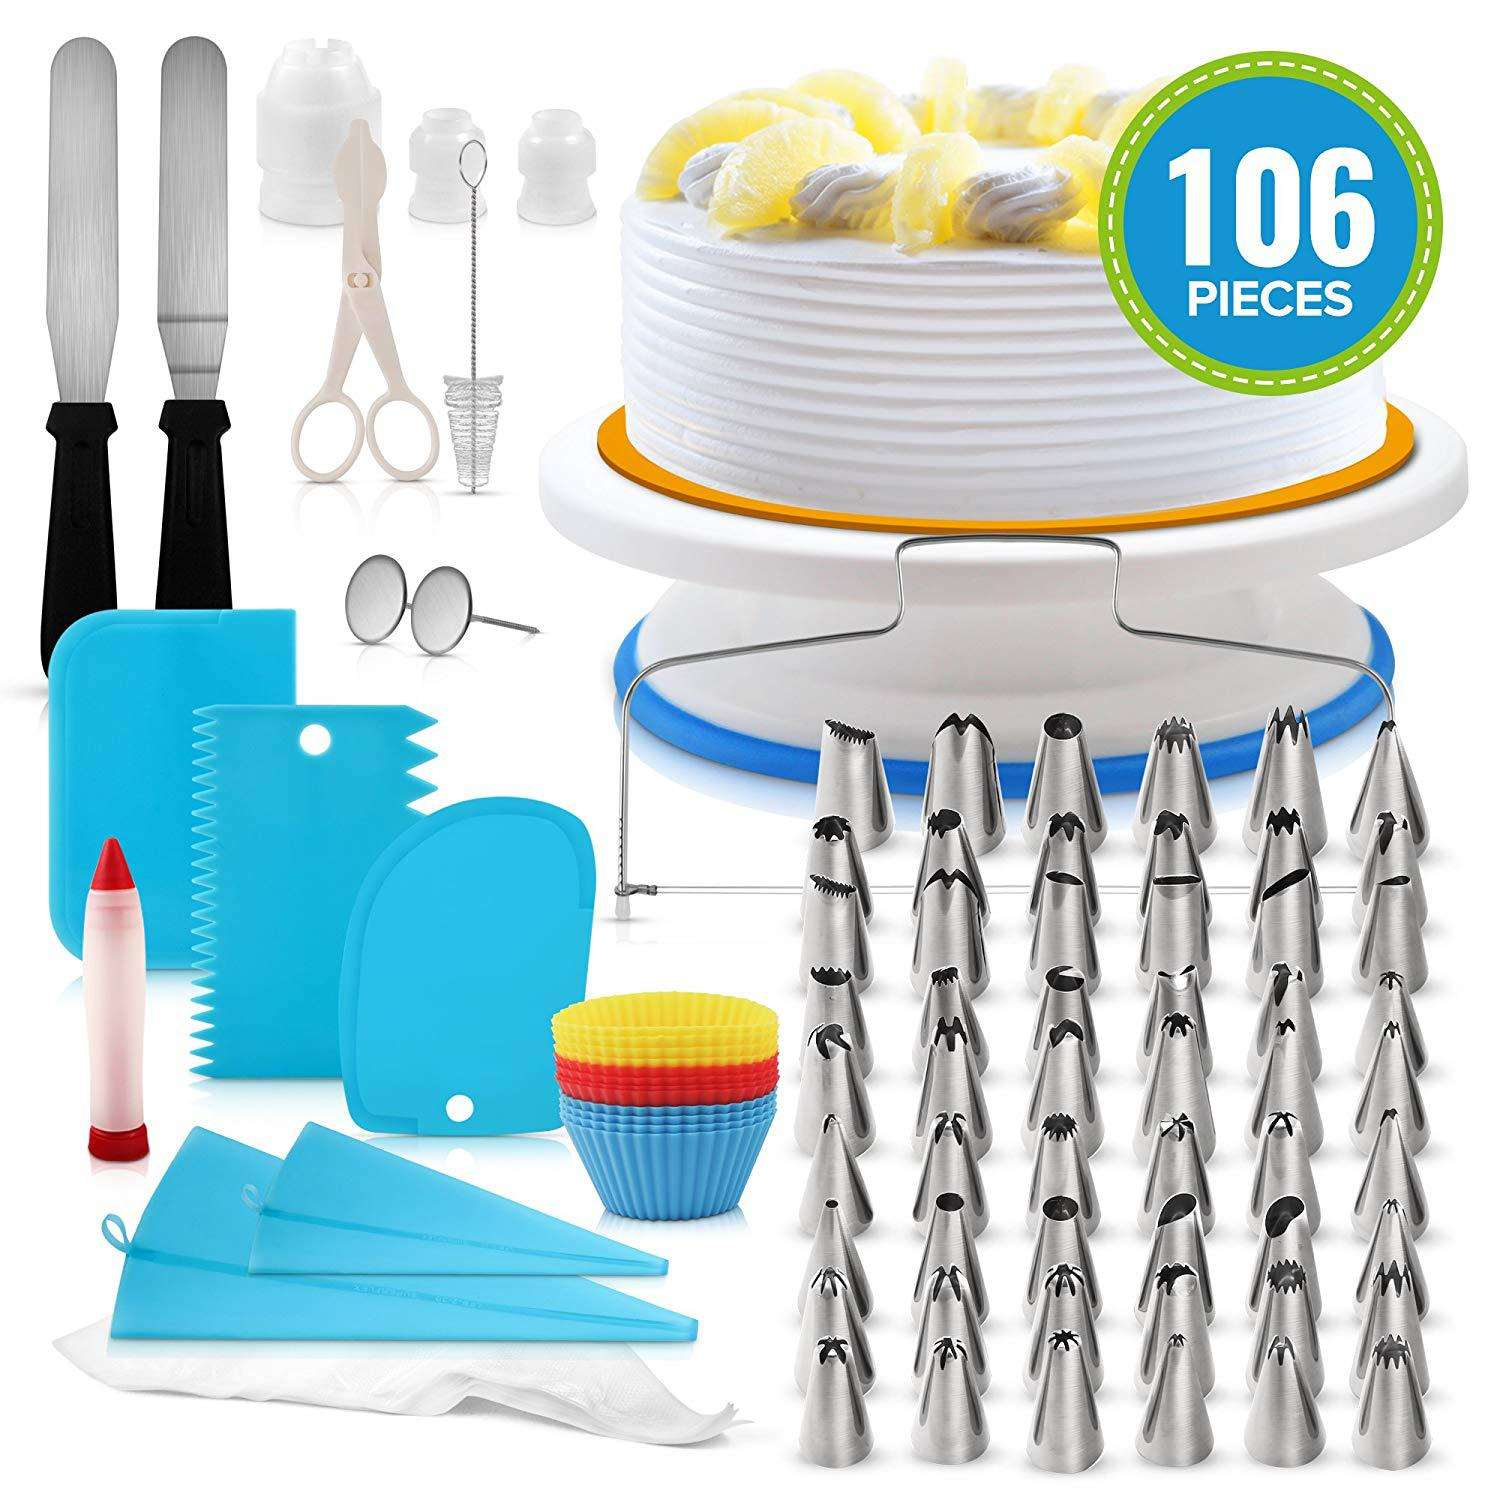 New Stainless Steel Decorating Supplies Cake Decorations Tools